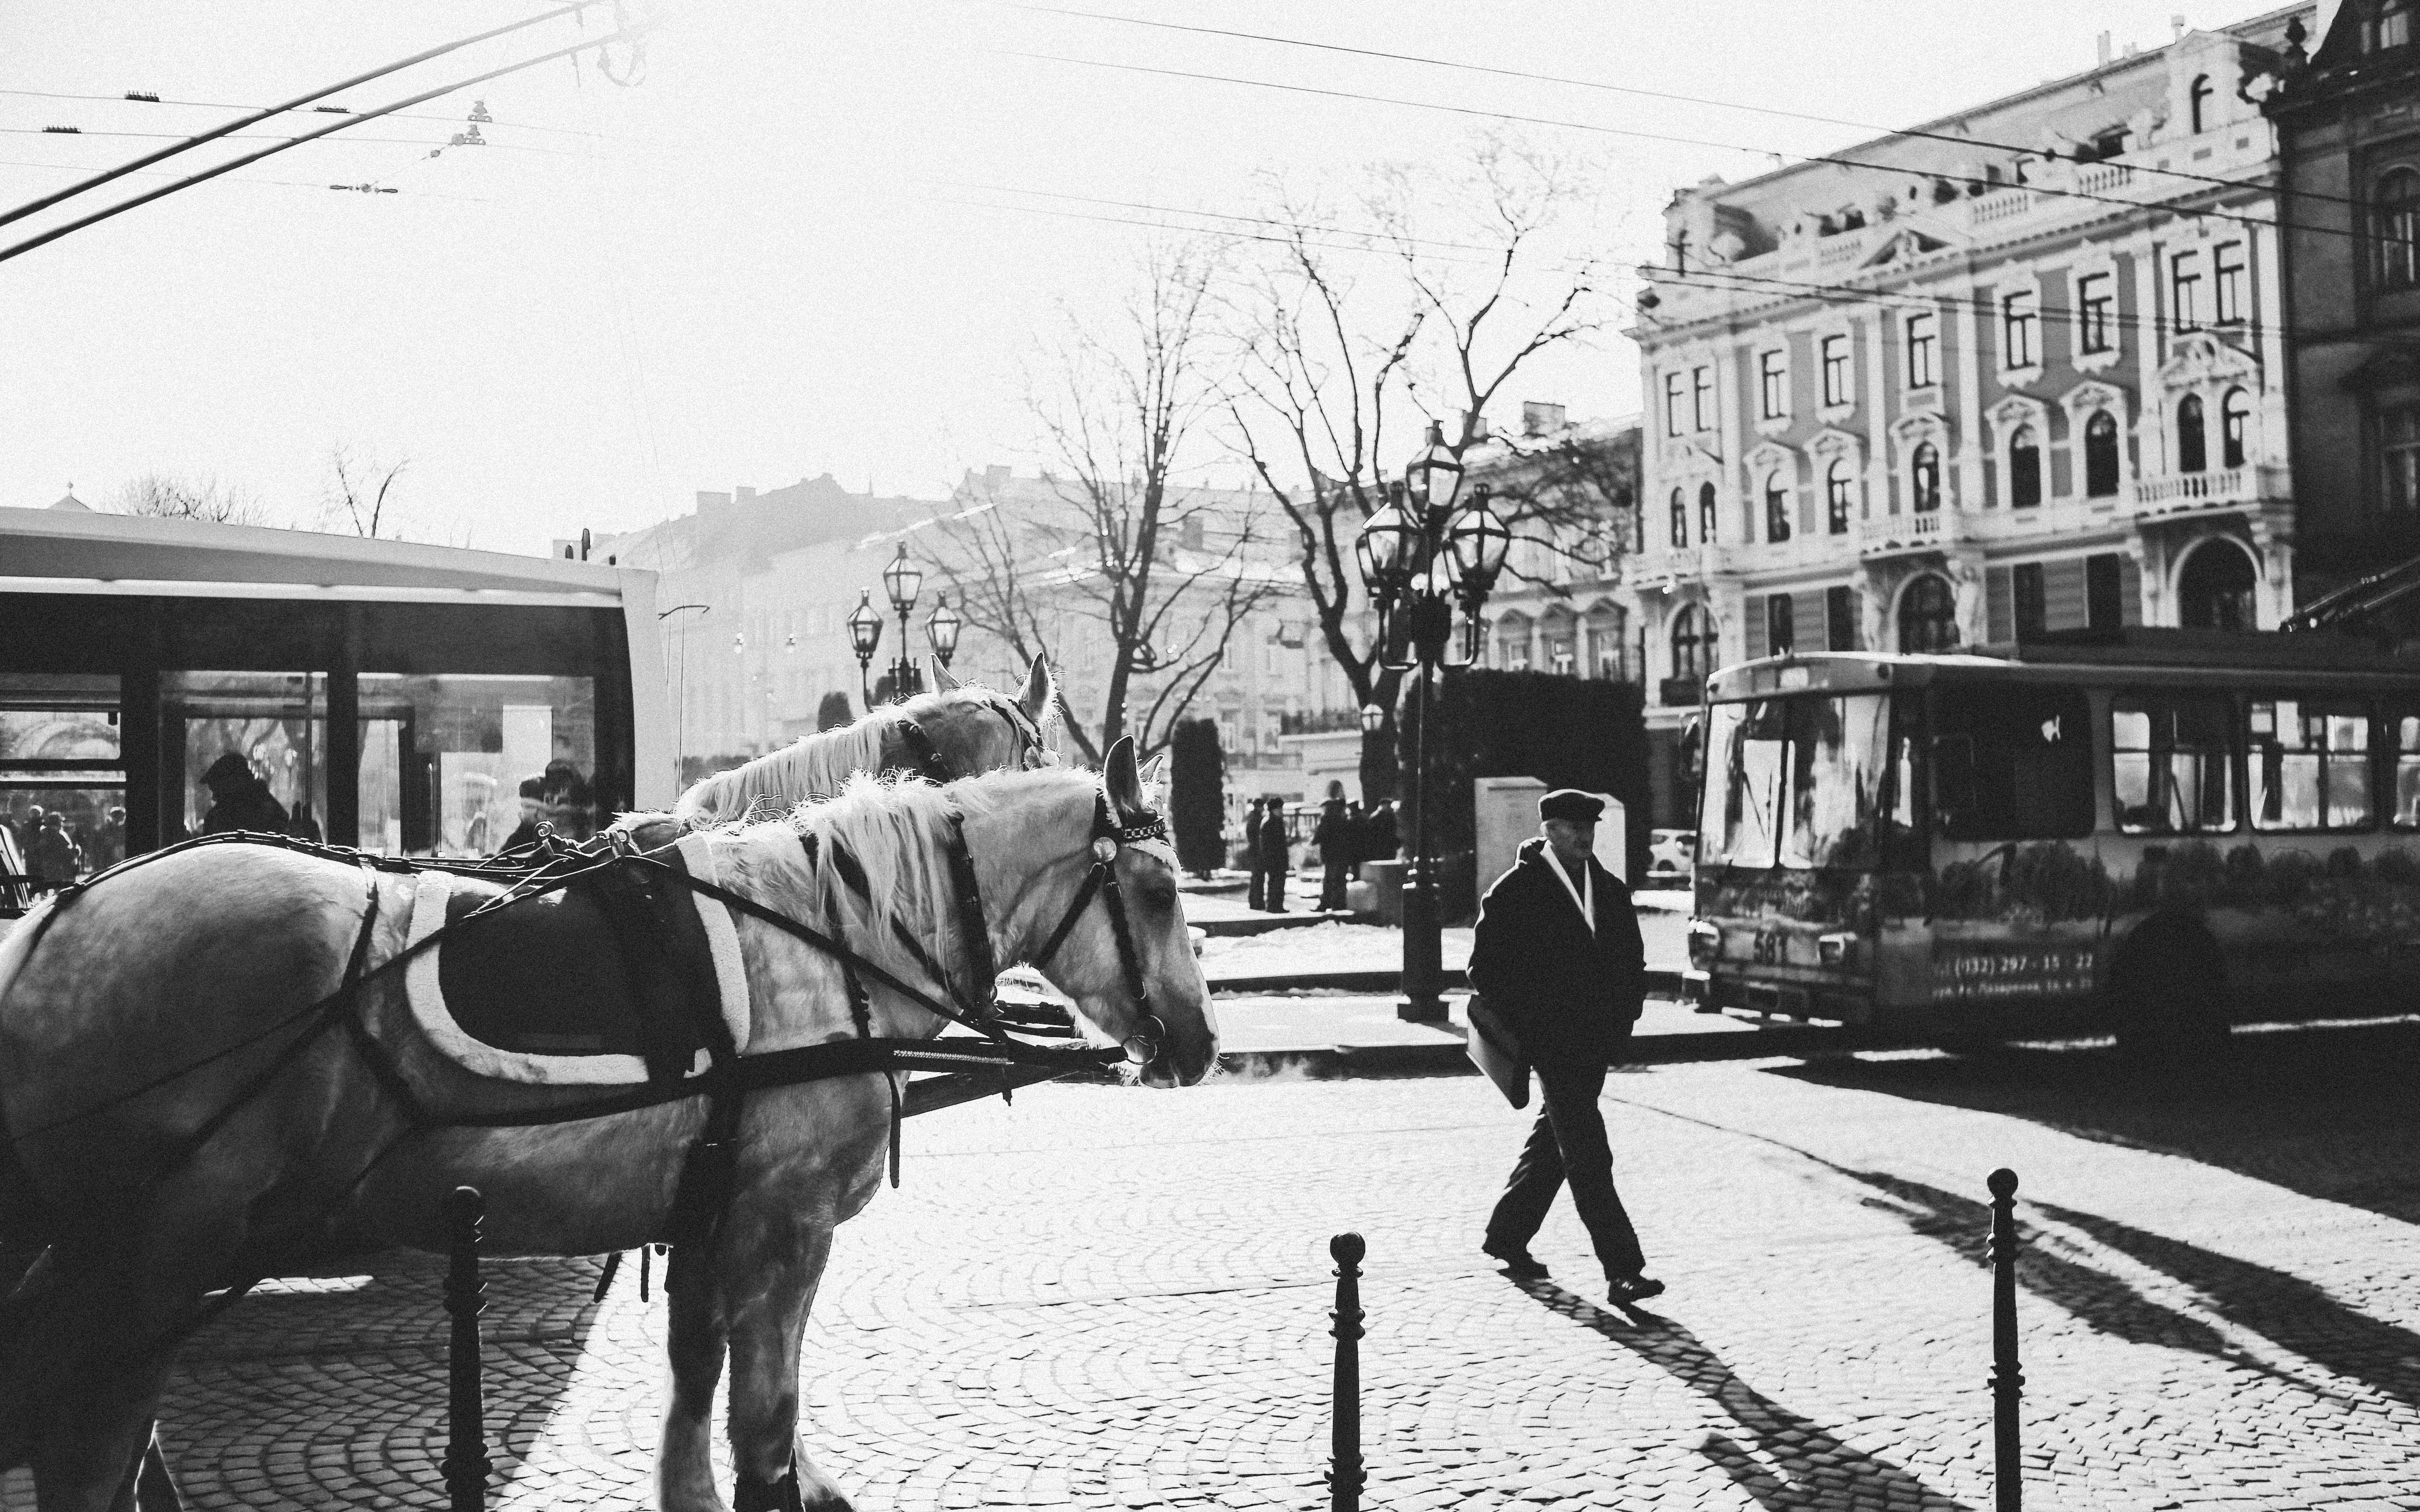 grayscale photography of man crossing street near horses